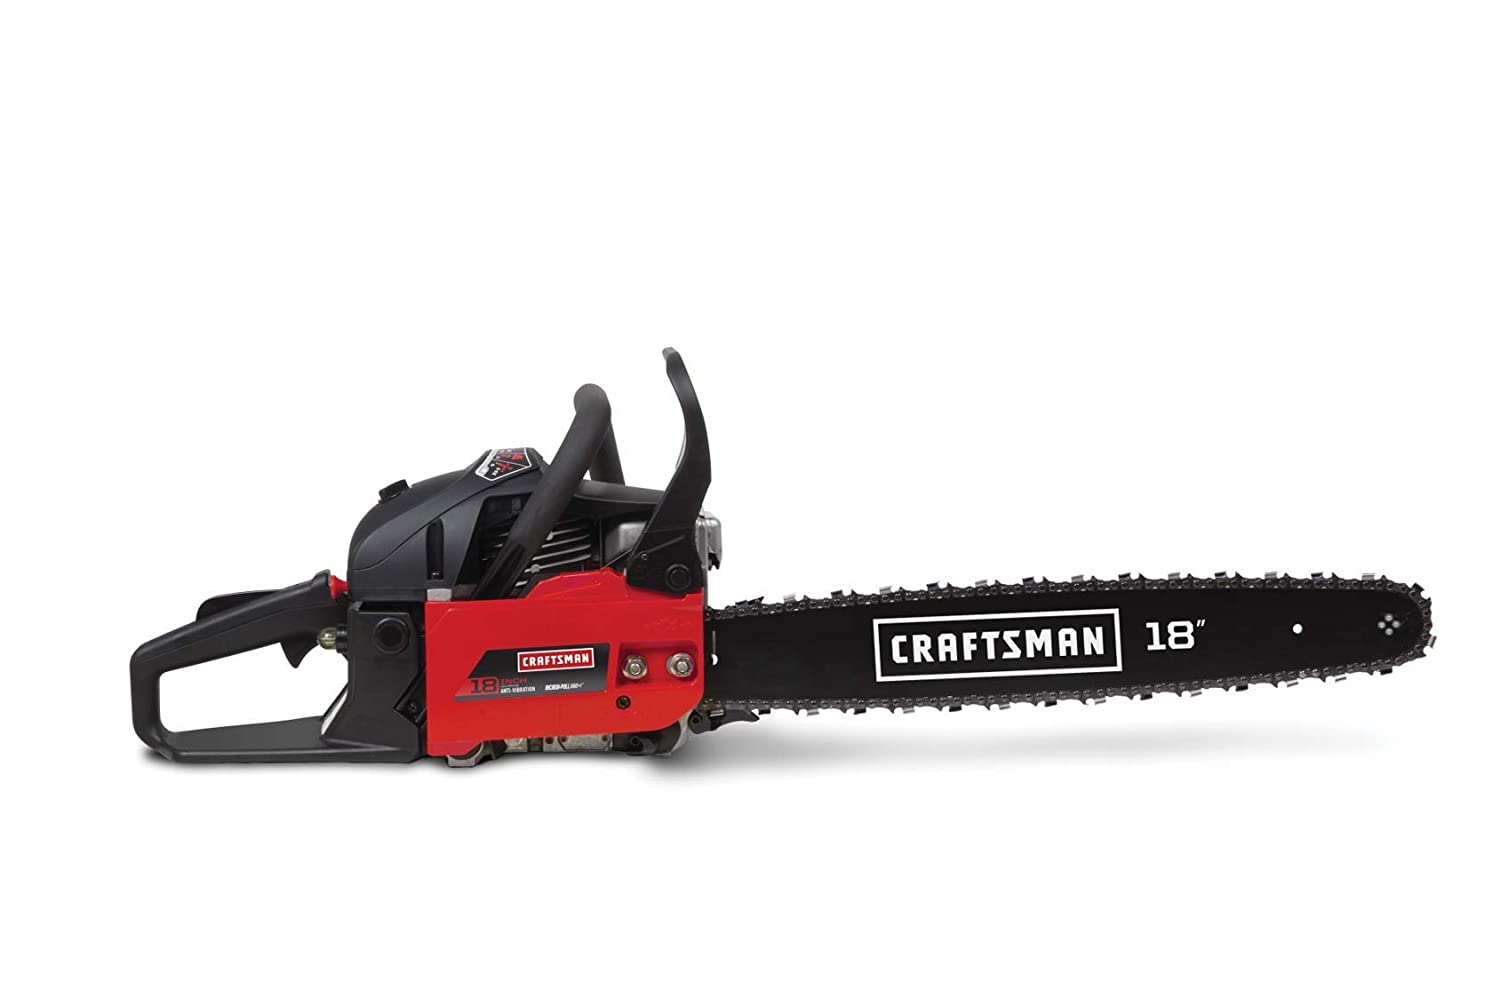 Craftsman CMXGSAMA421S featured image 3